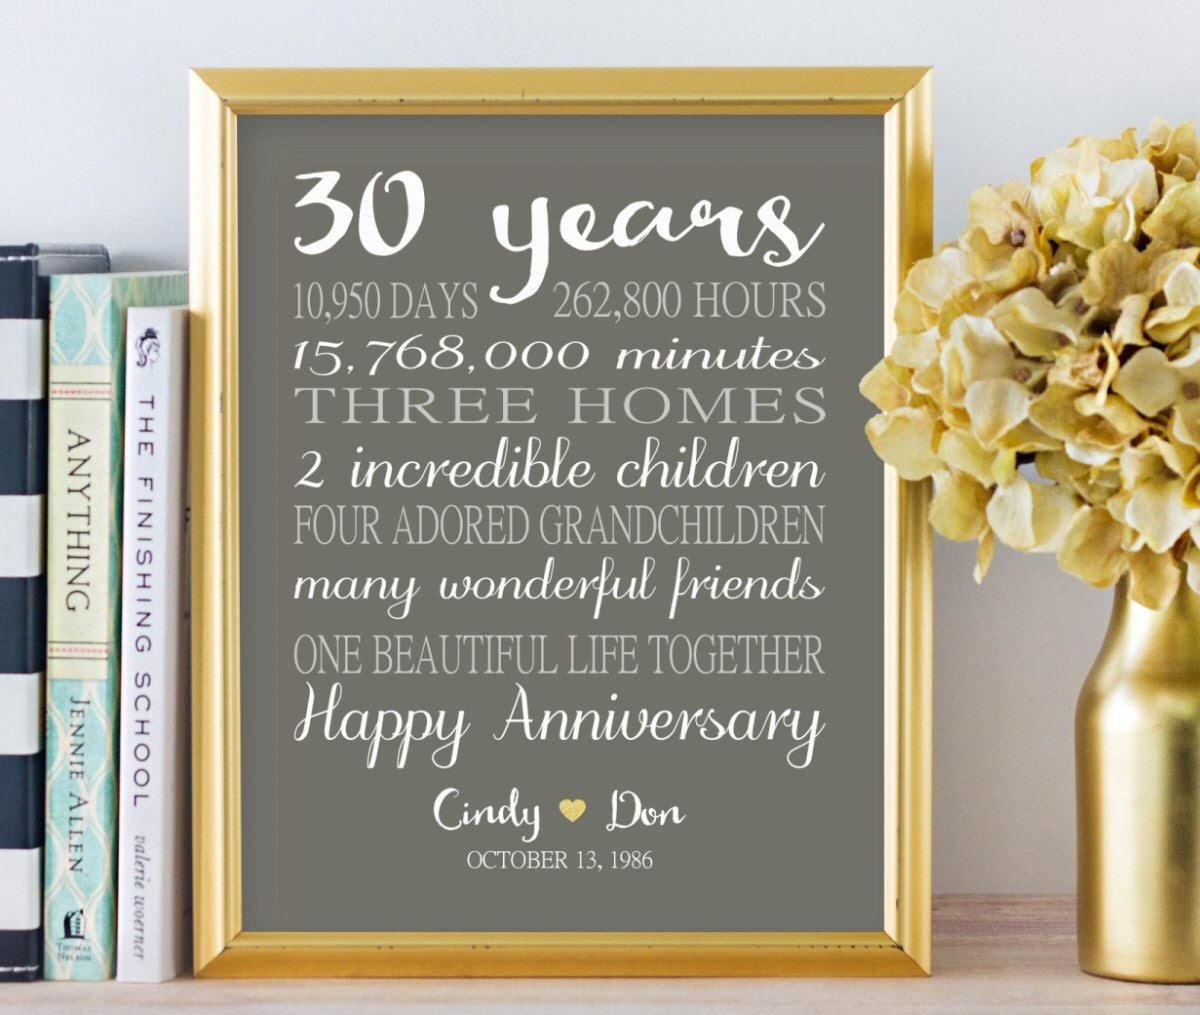 What Is The 30th Wedding Anniversary Gift: 30th Anniversary Gifts For WIFE Personalized Gift Spouse 30